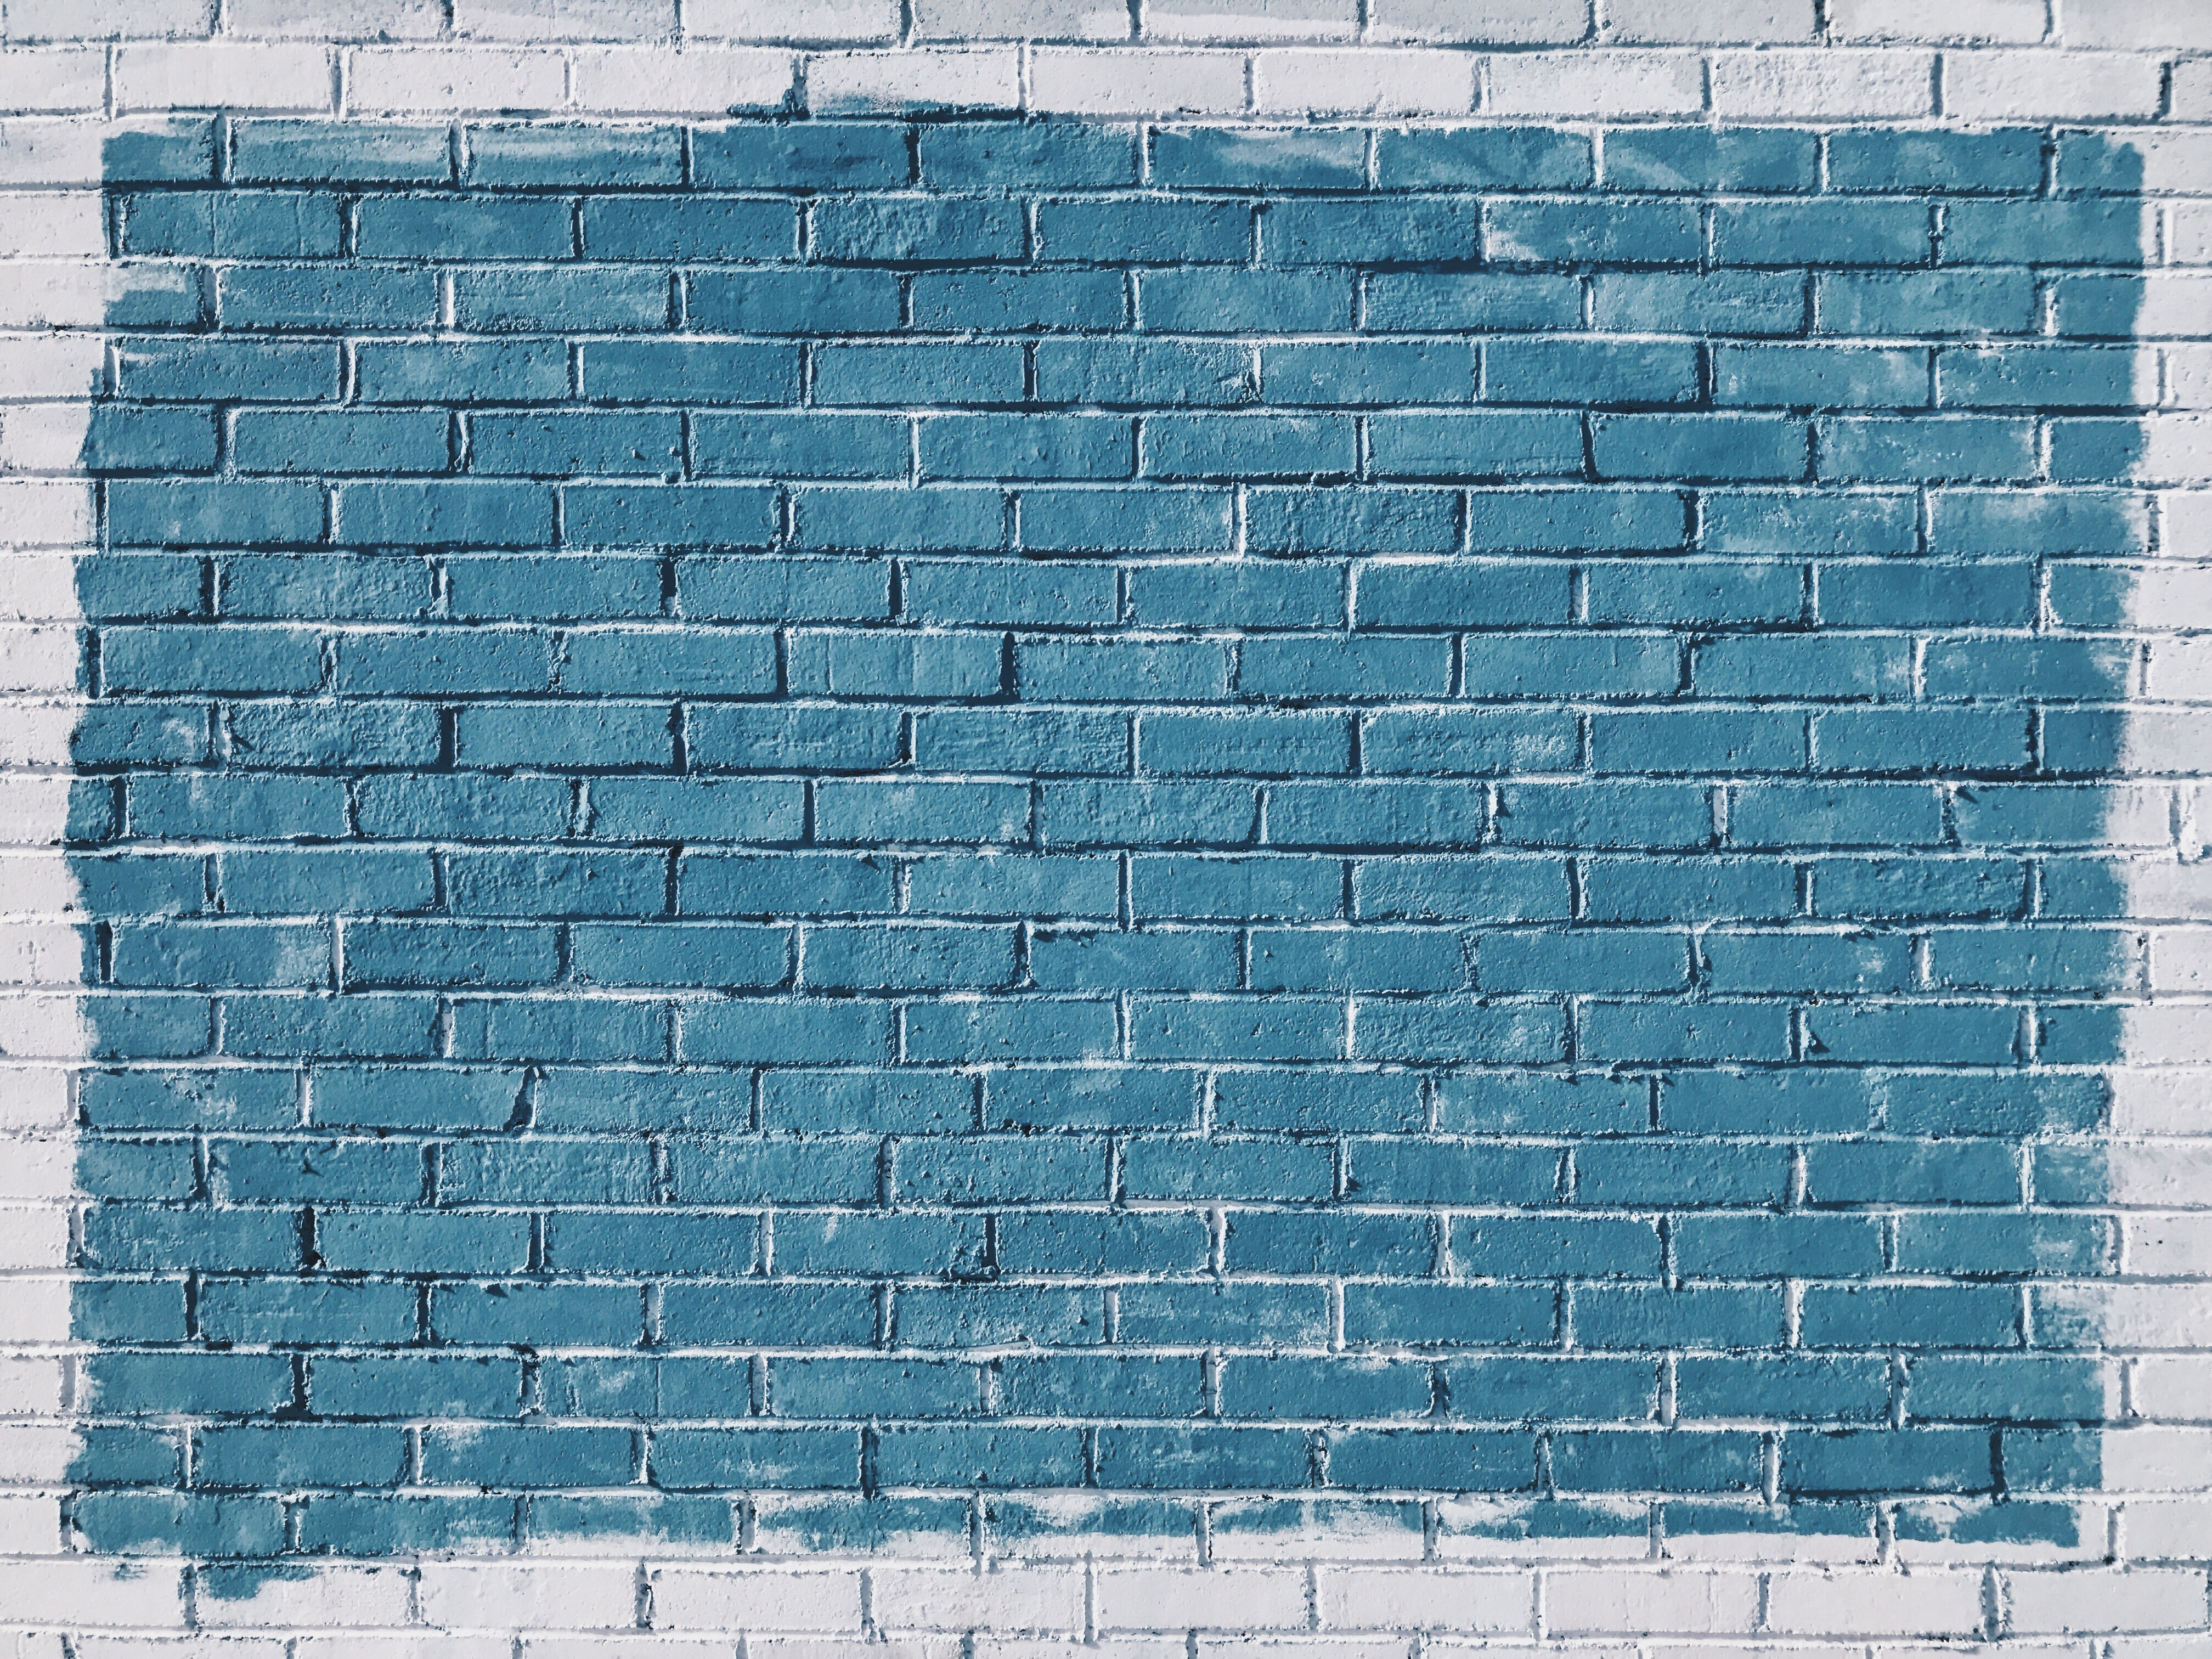 Blue painted rectangle on painted white brick wall